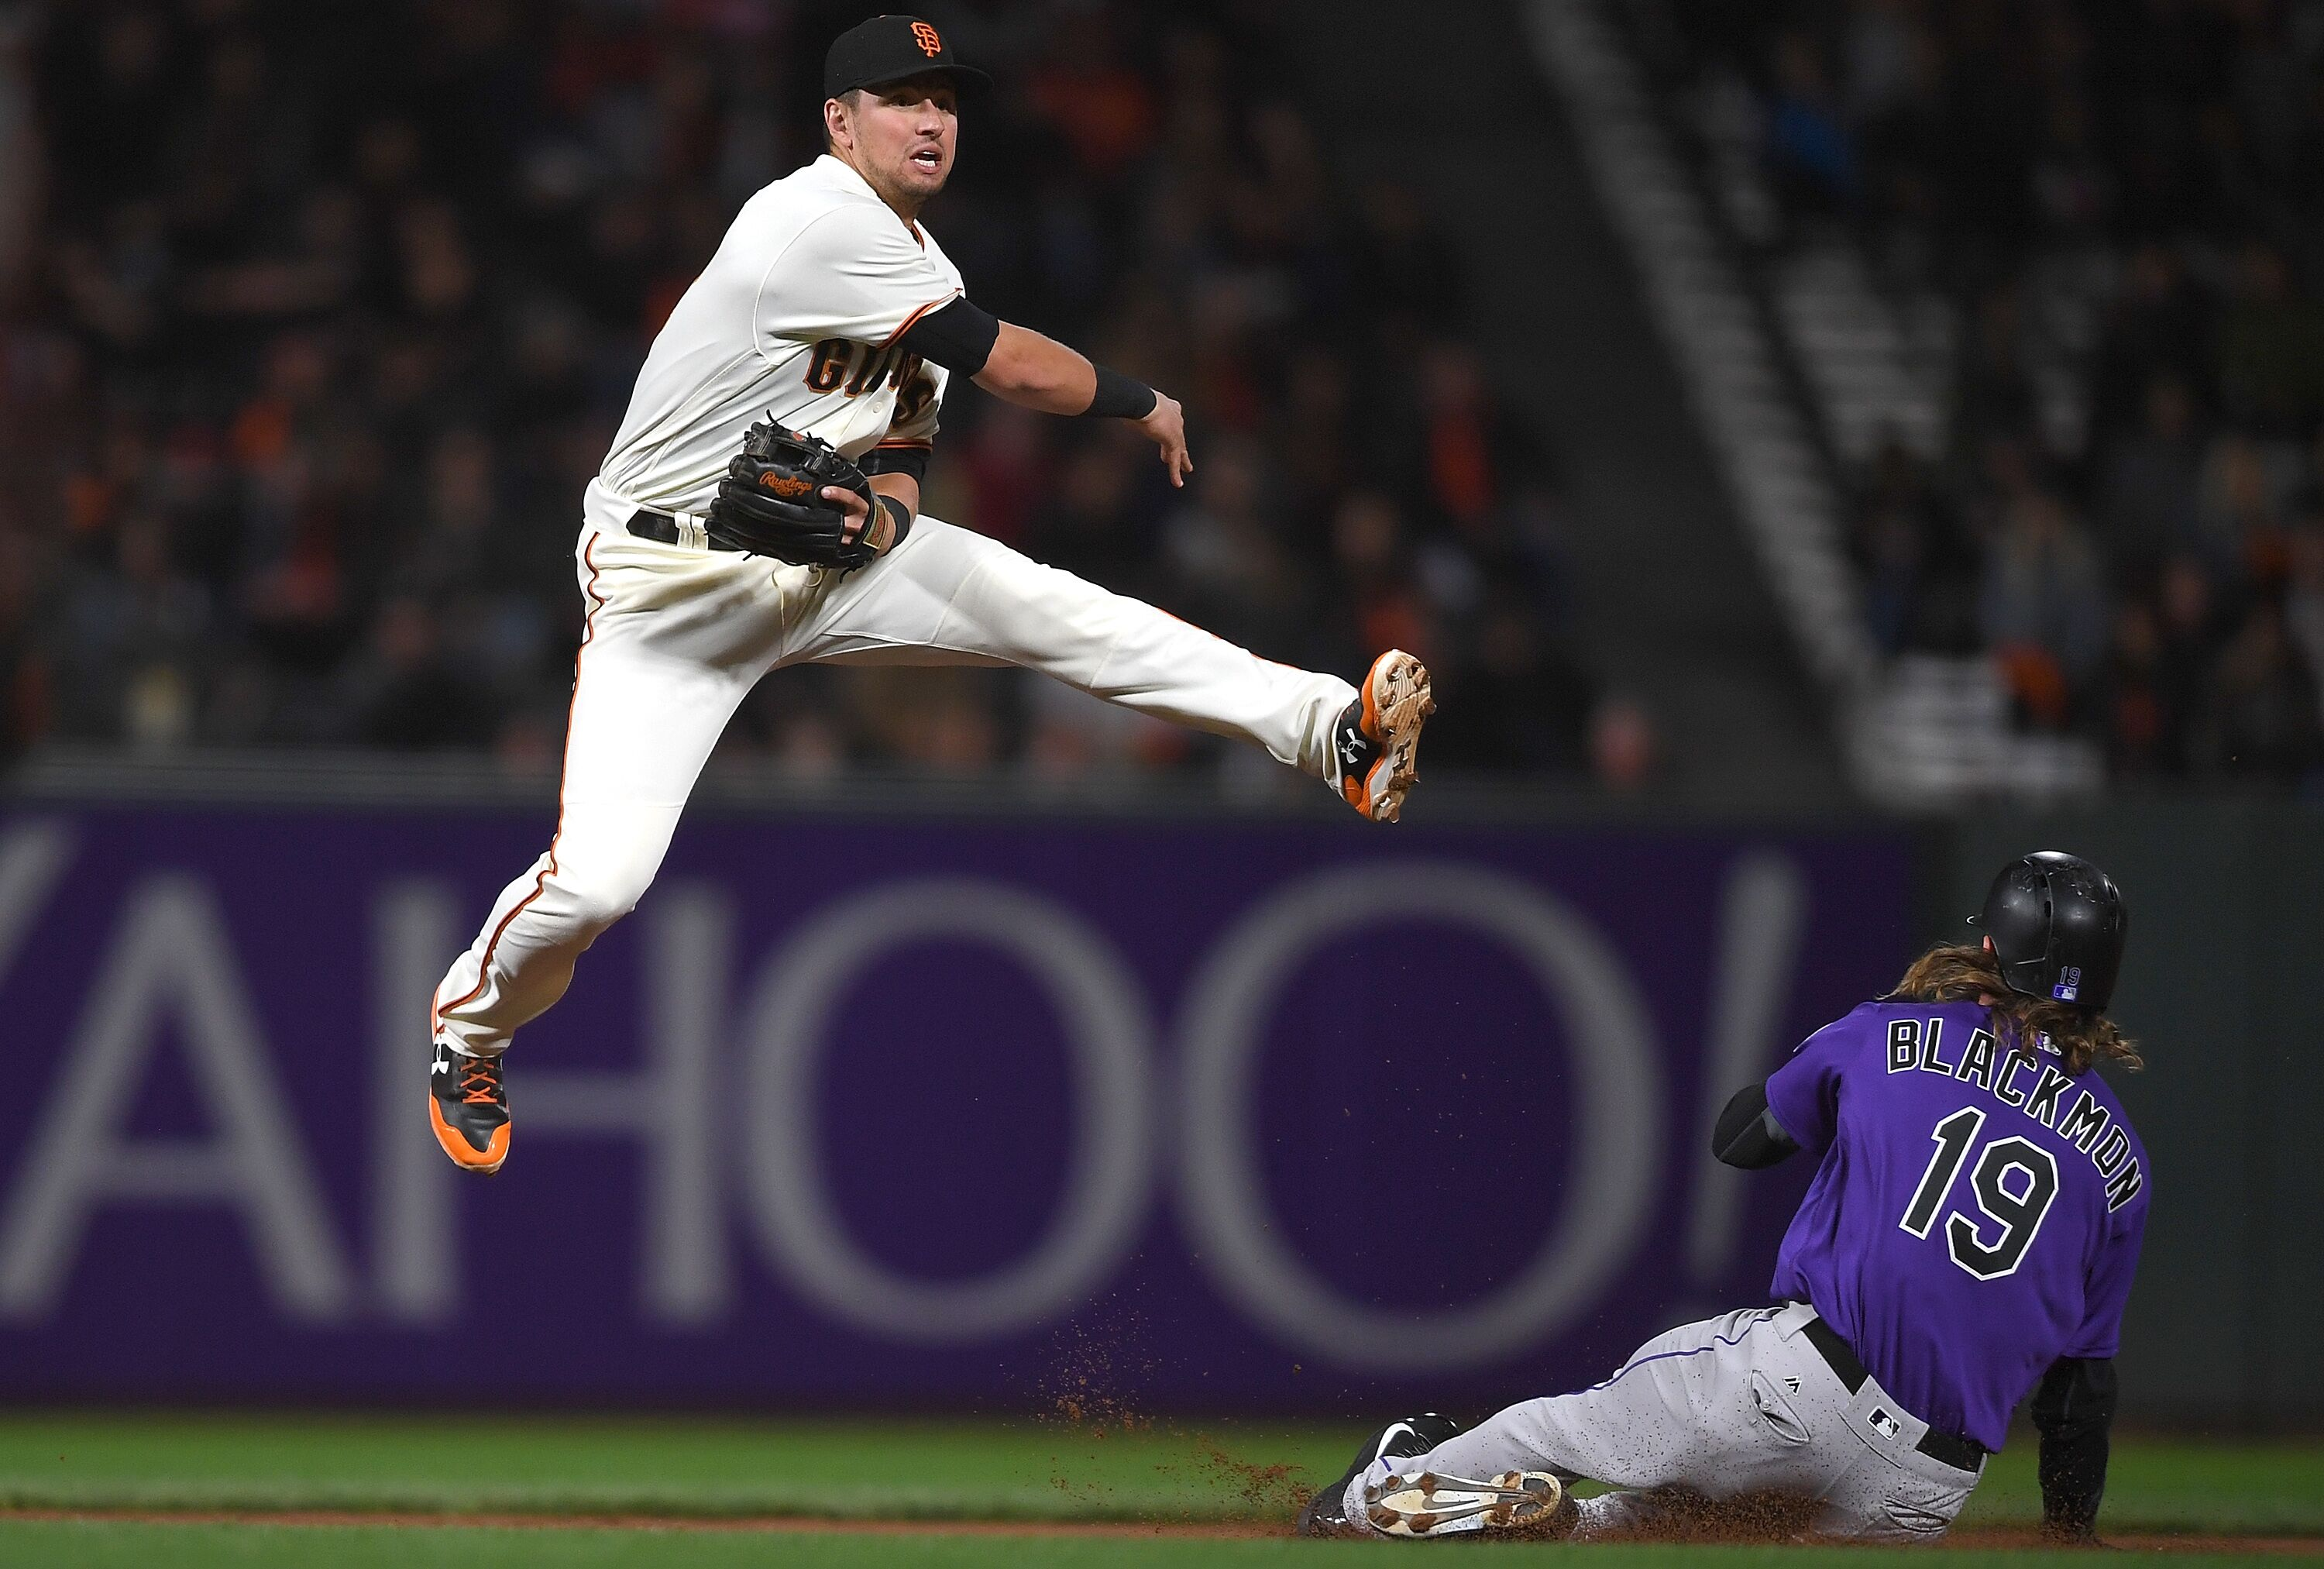 849834956-colorado-rockies-v-san-francisco-giants.jpg